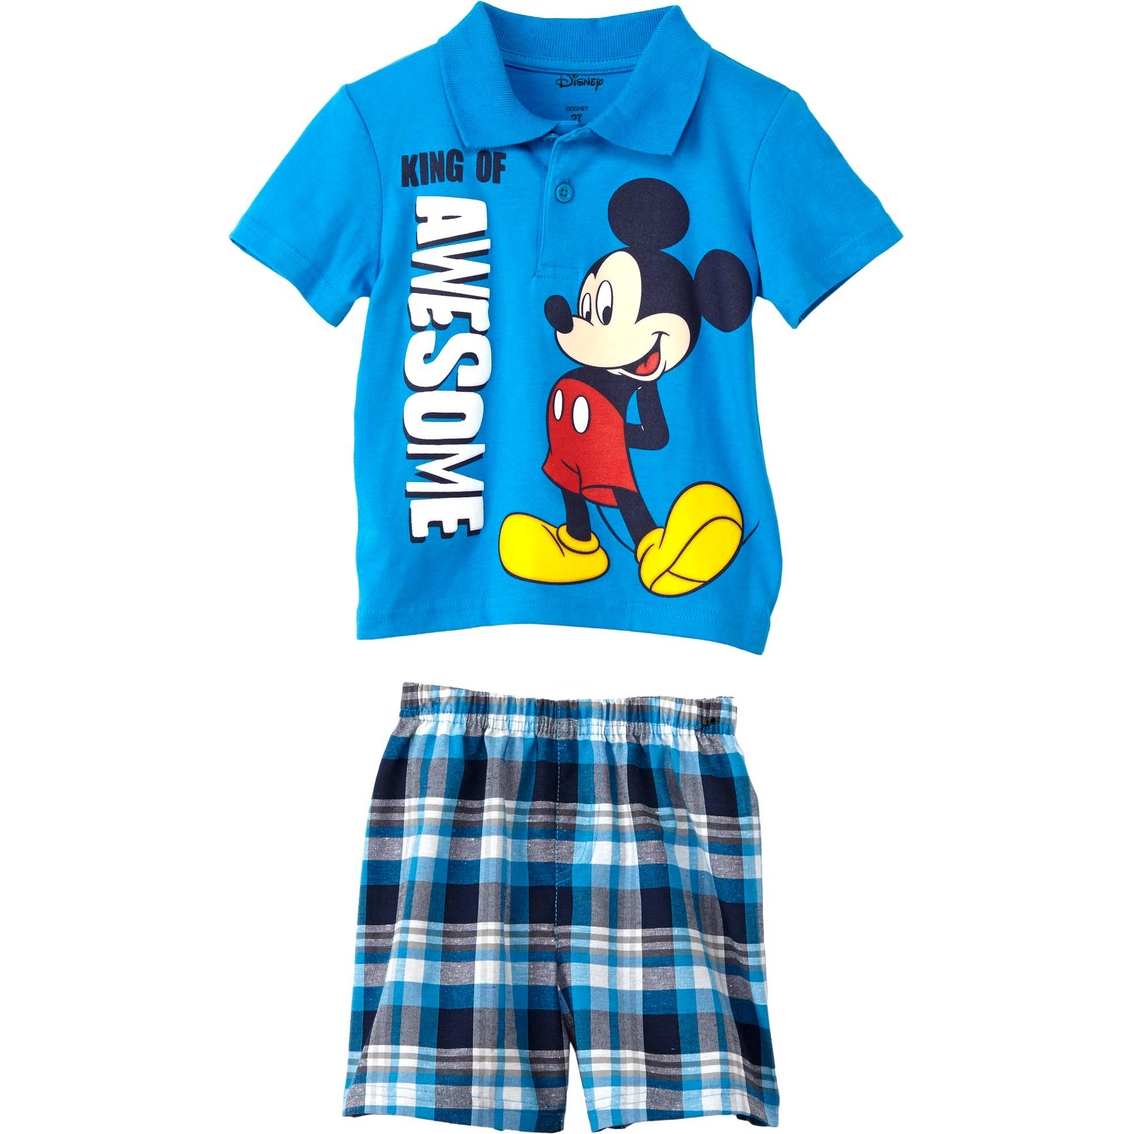 ba4e7d15c0934 Disney Toddler Boys 2 Pc. Mickey Mouse Polo Shirt And Shorts Set ...